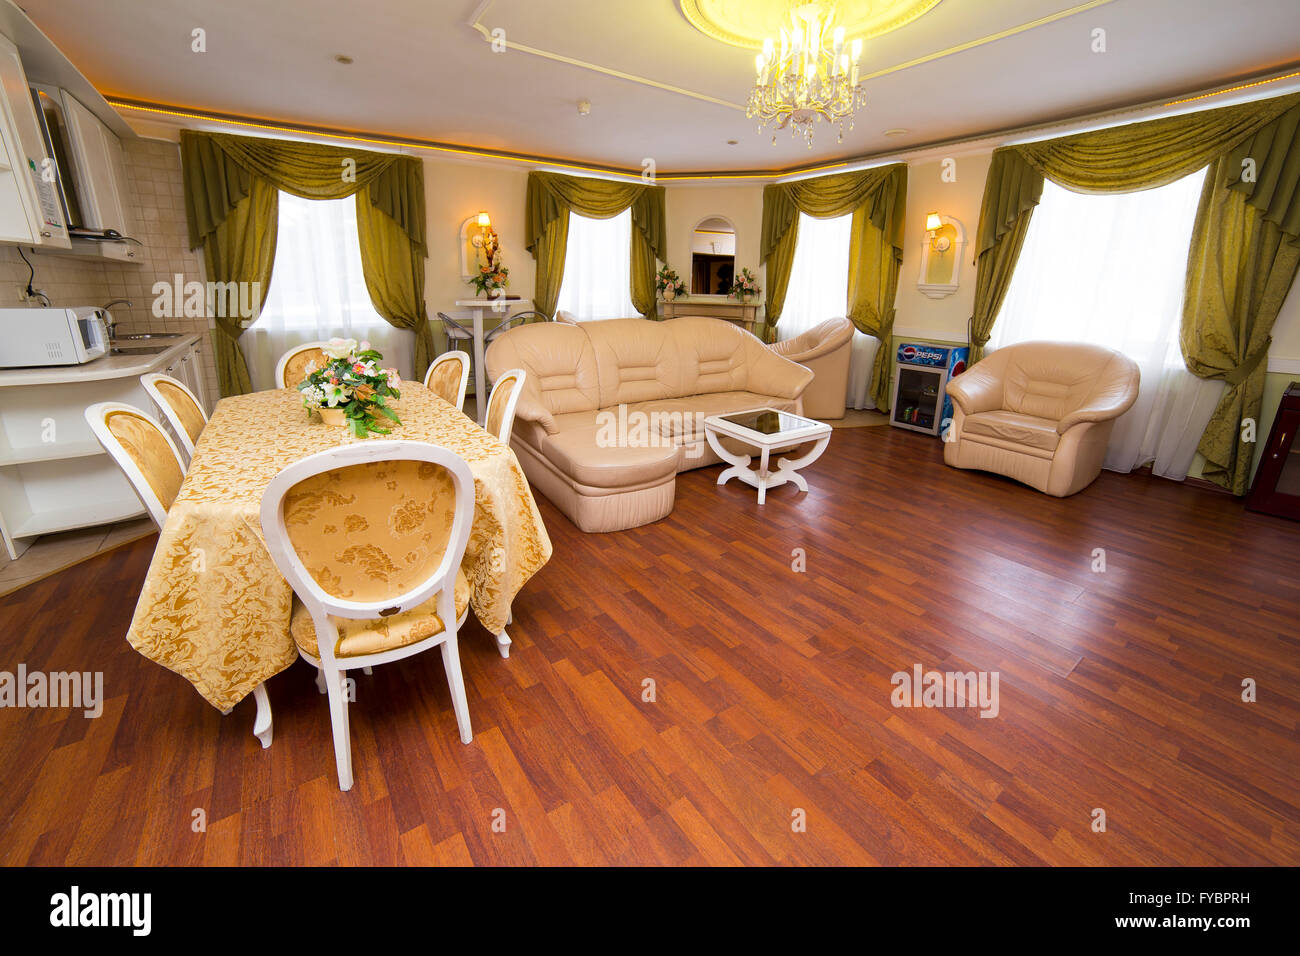 Apartment classic style interior with dinner table and sofa - Stock Image